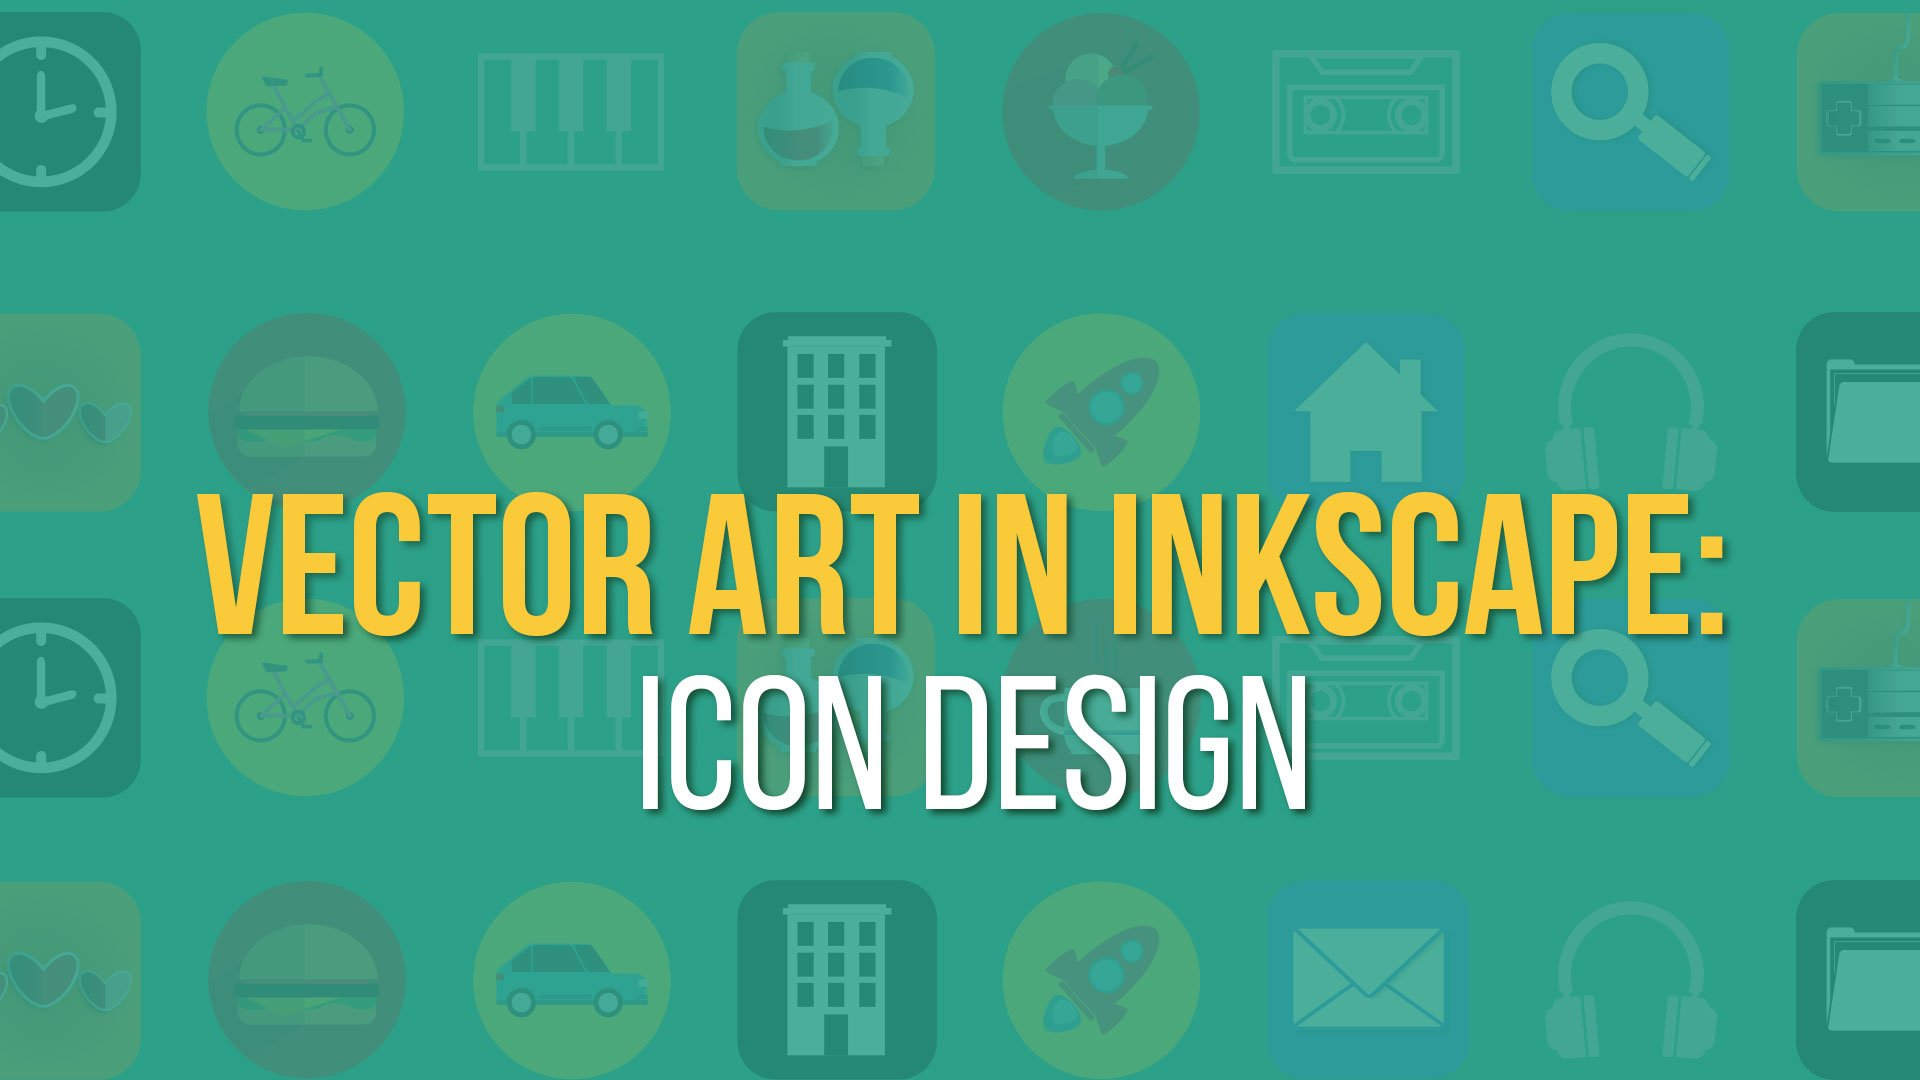 Vector Art in Inkscape - Icon Design